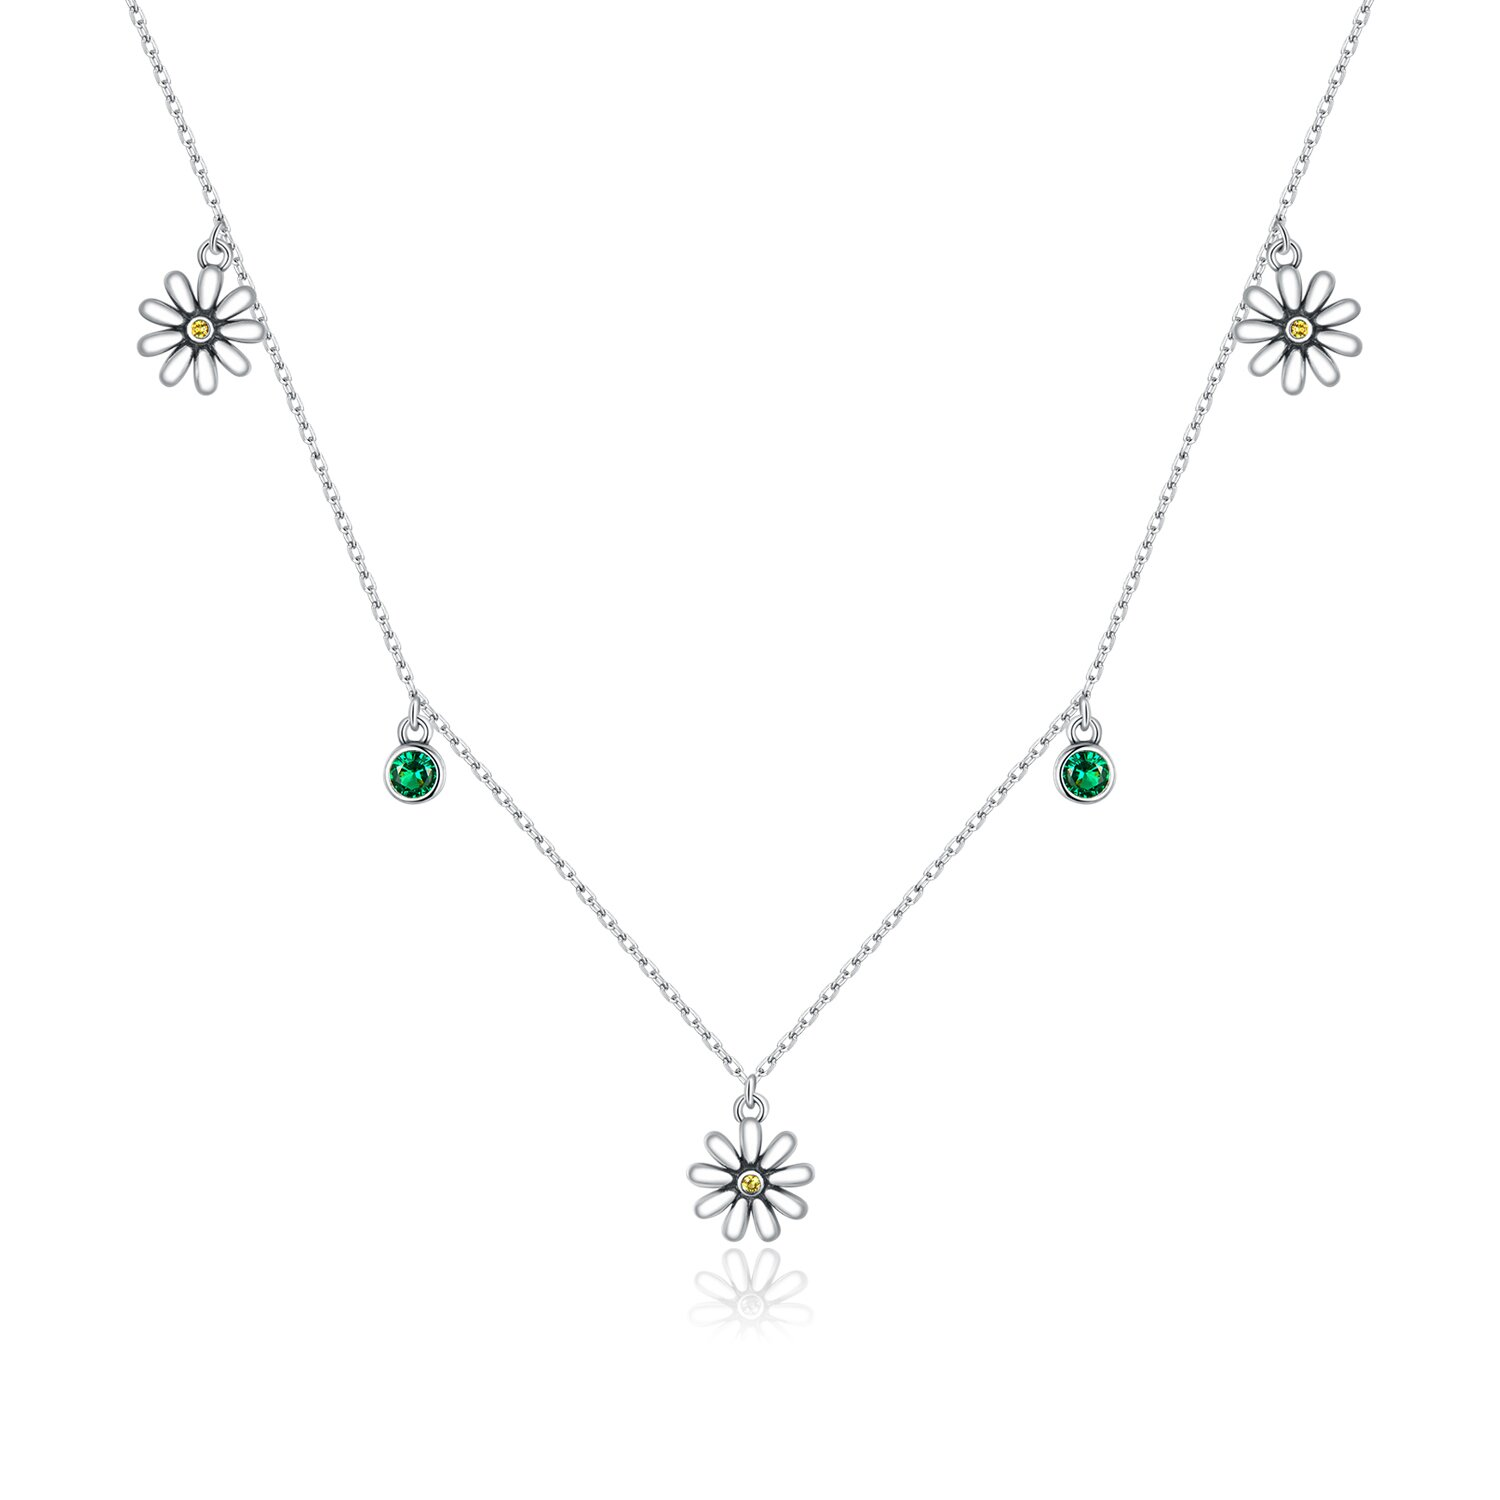 Colier din argint Green Daisy Crystals poza 2021